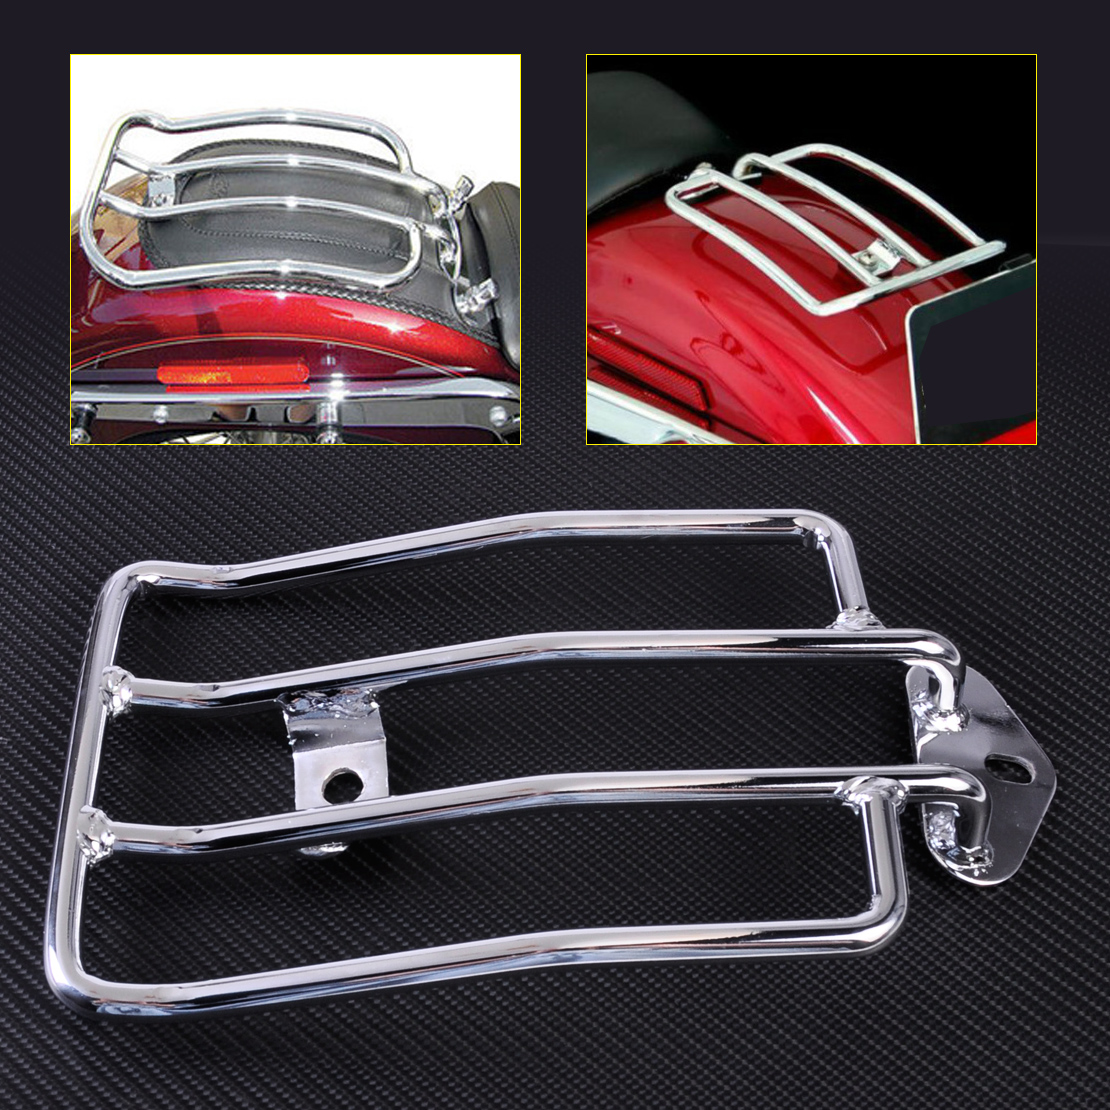 CITALL Silver Seat Luggage Shelf Carrier Support Rack for Harley Davidson Sportster 1200 883 with stock solo seat 2004-2011 2012 partol black car roof rack cross bars roof luggage carrier cargo boxes bike rack 45kg 100lbs for honda pilot 2013 2014 2015